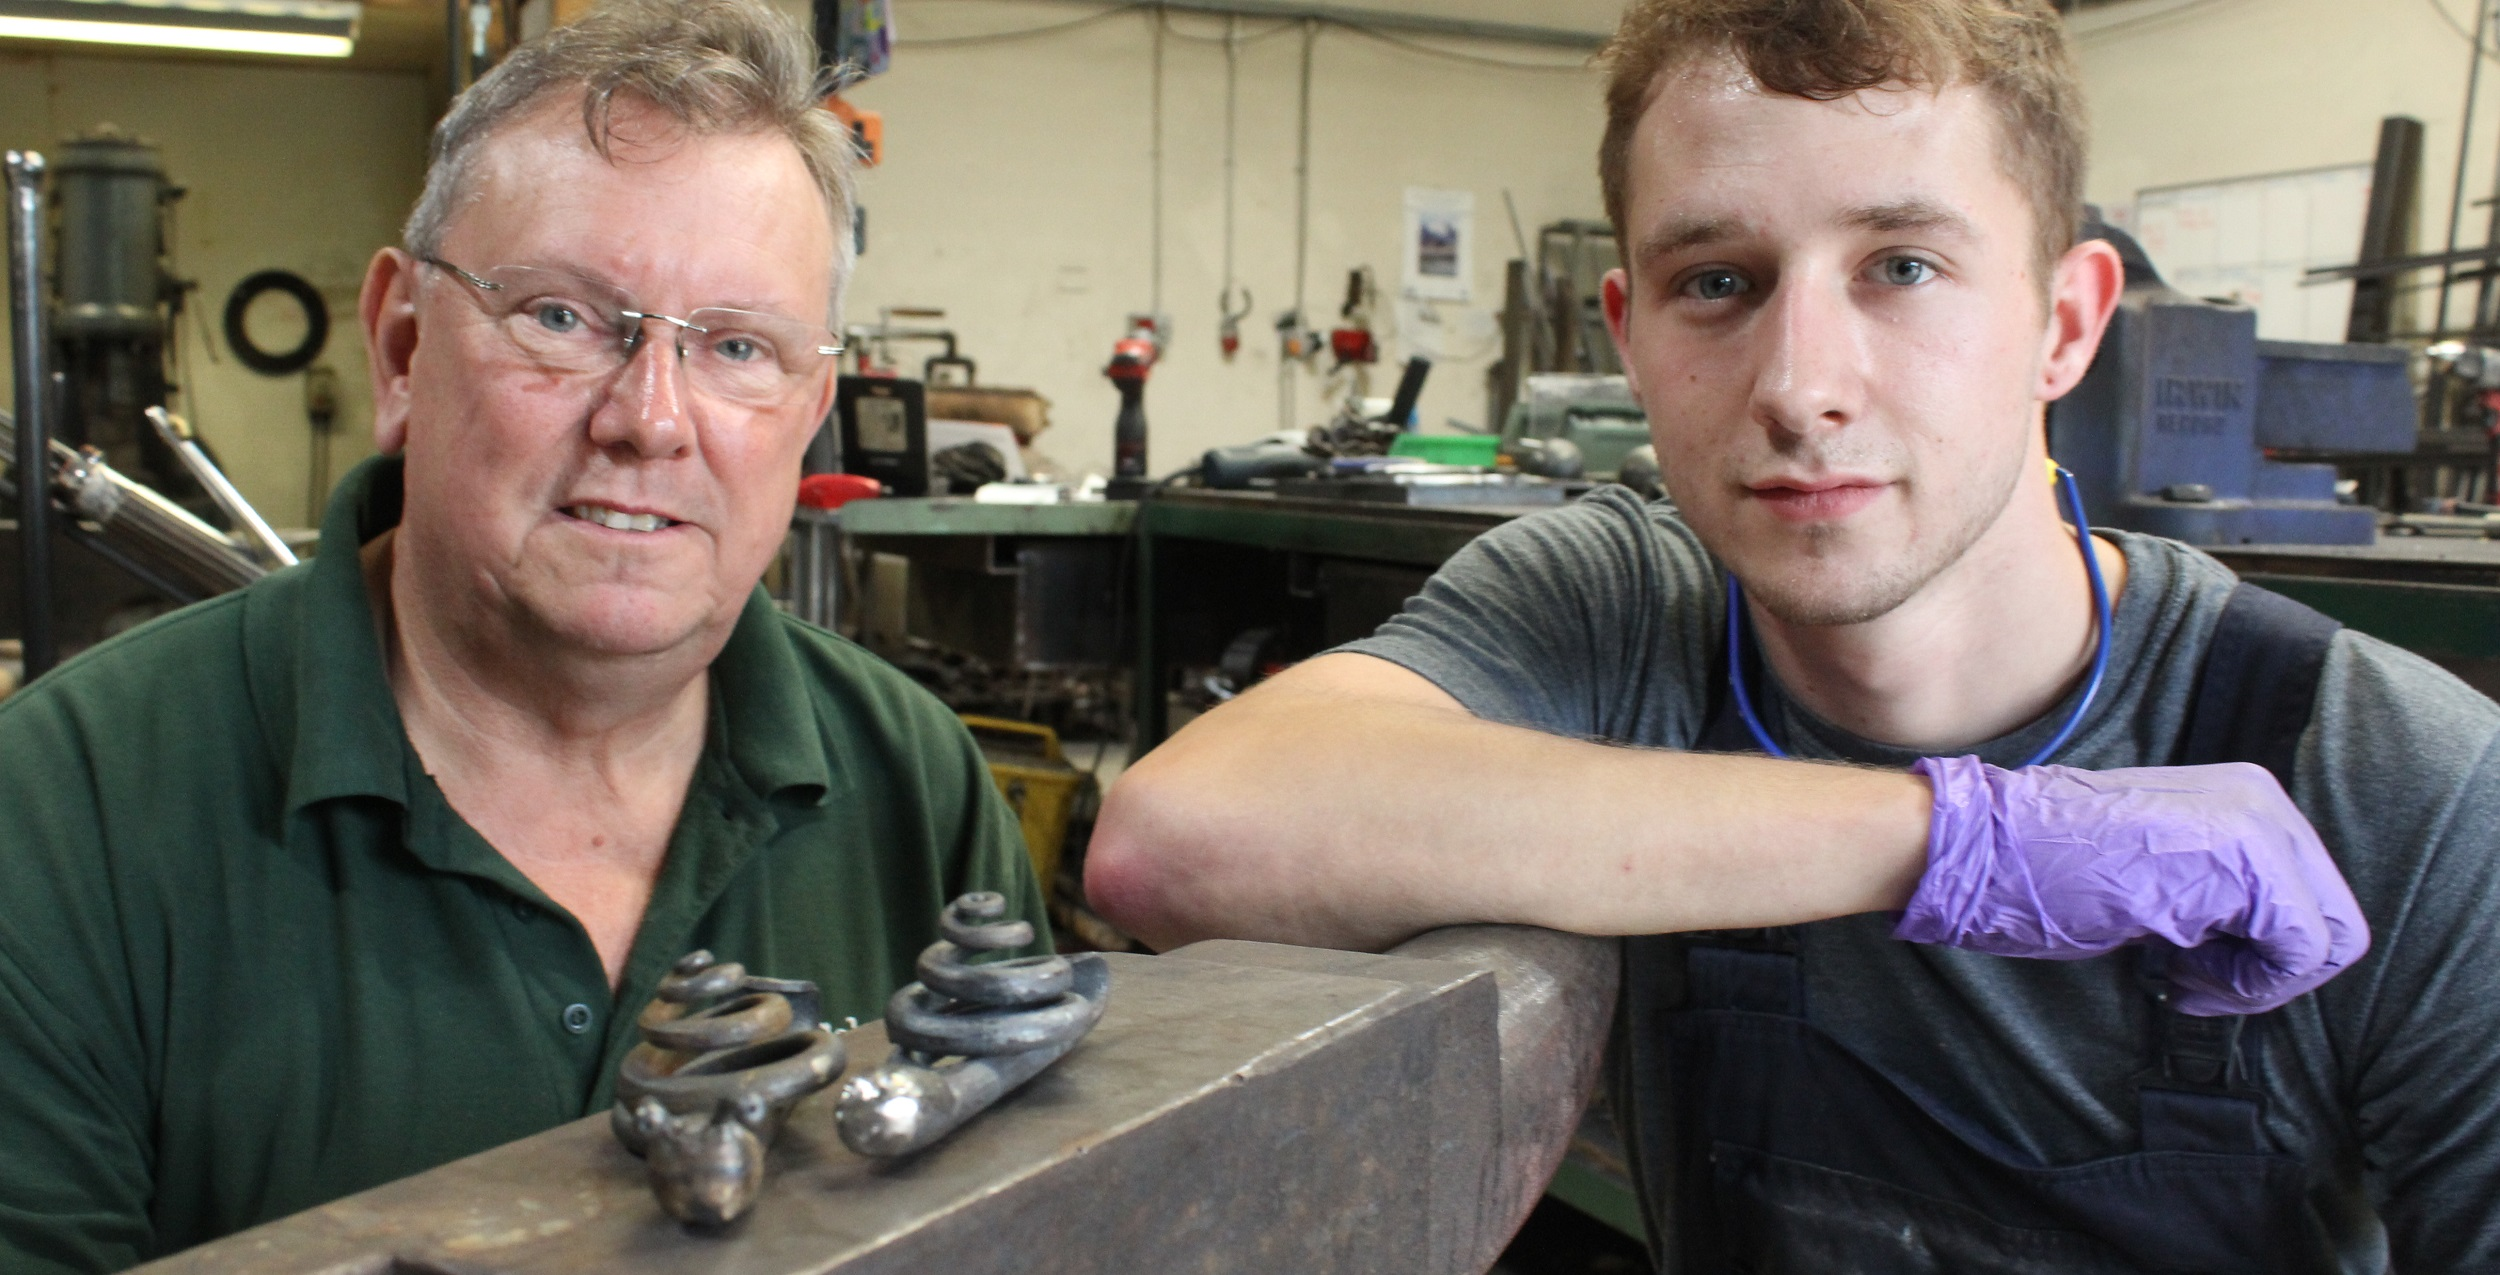 Press release - Blacksmith apprentice makes fast work of handmade steel snails